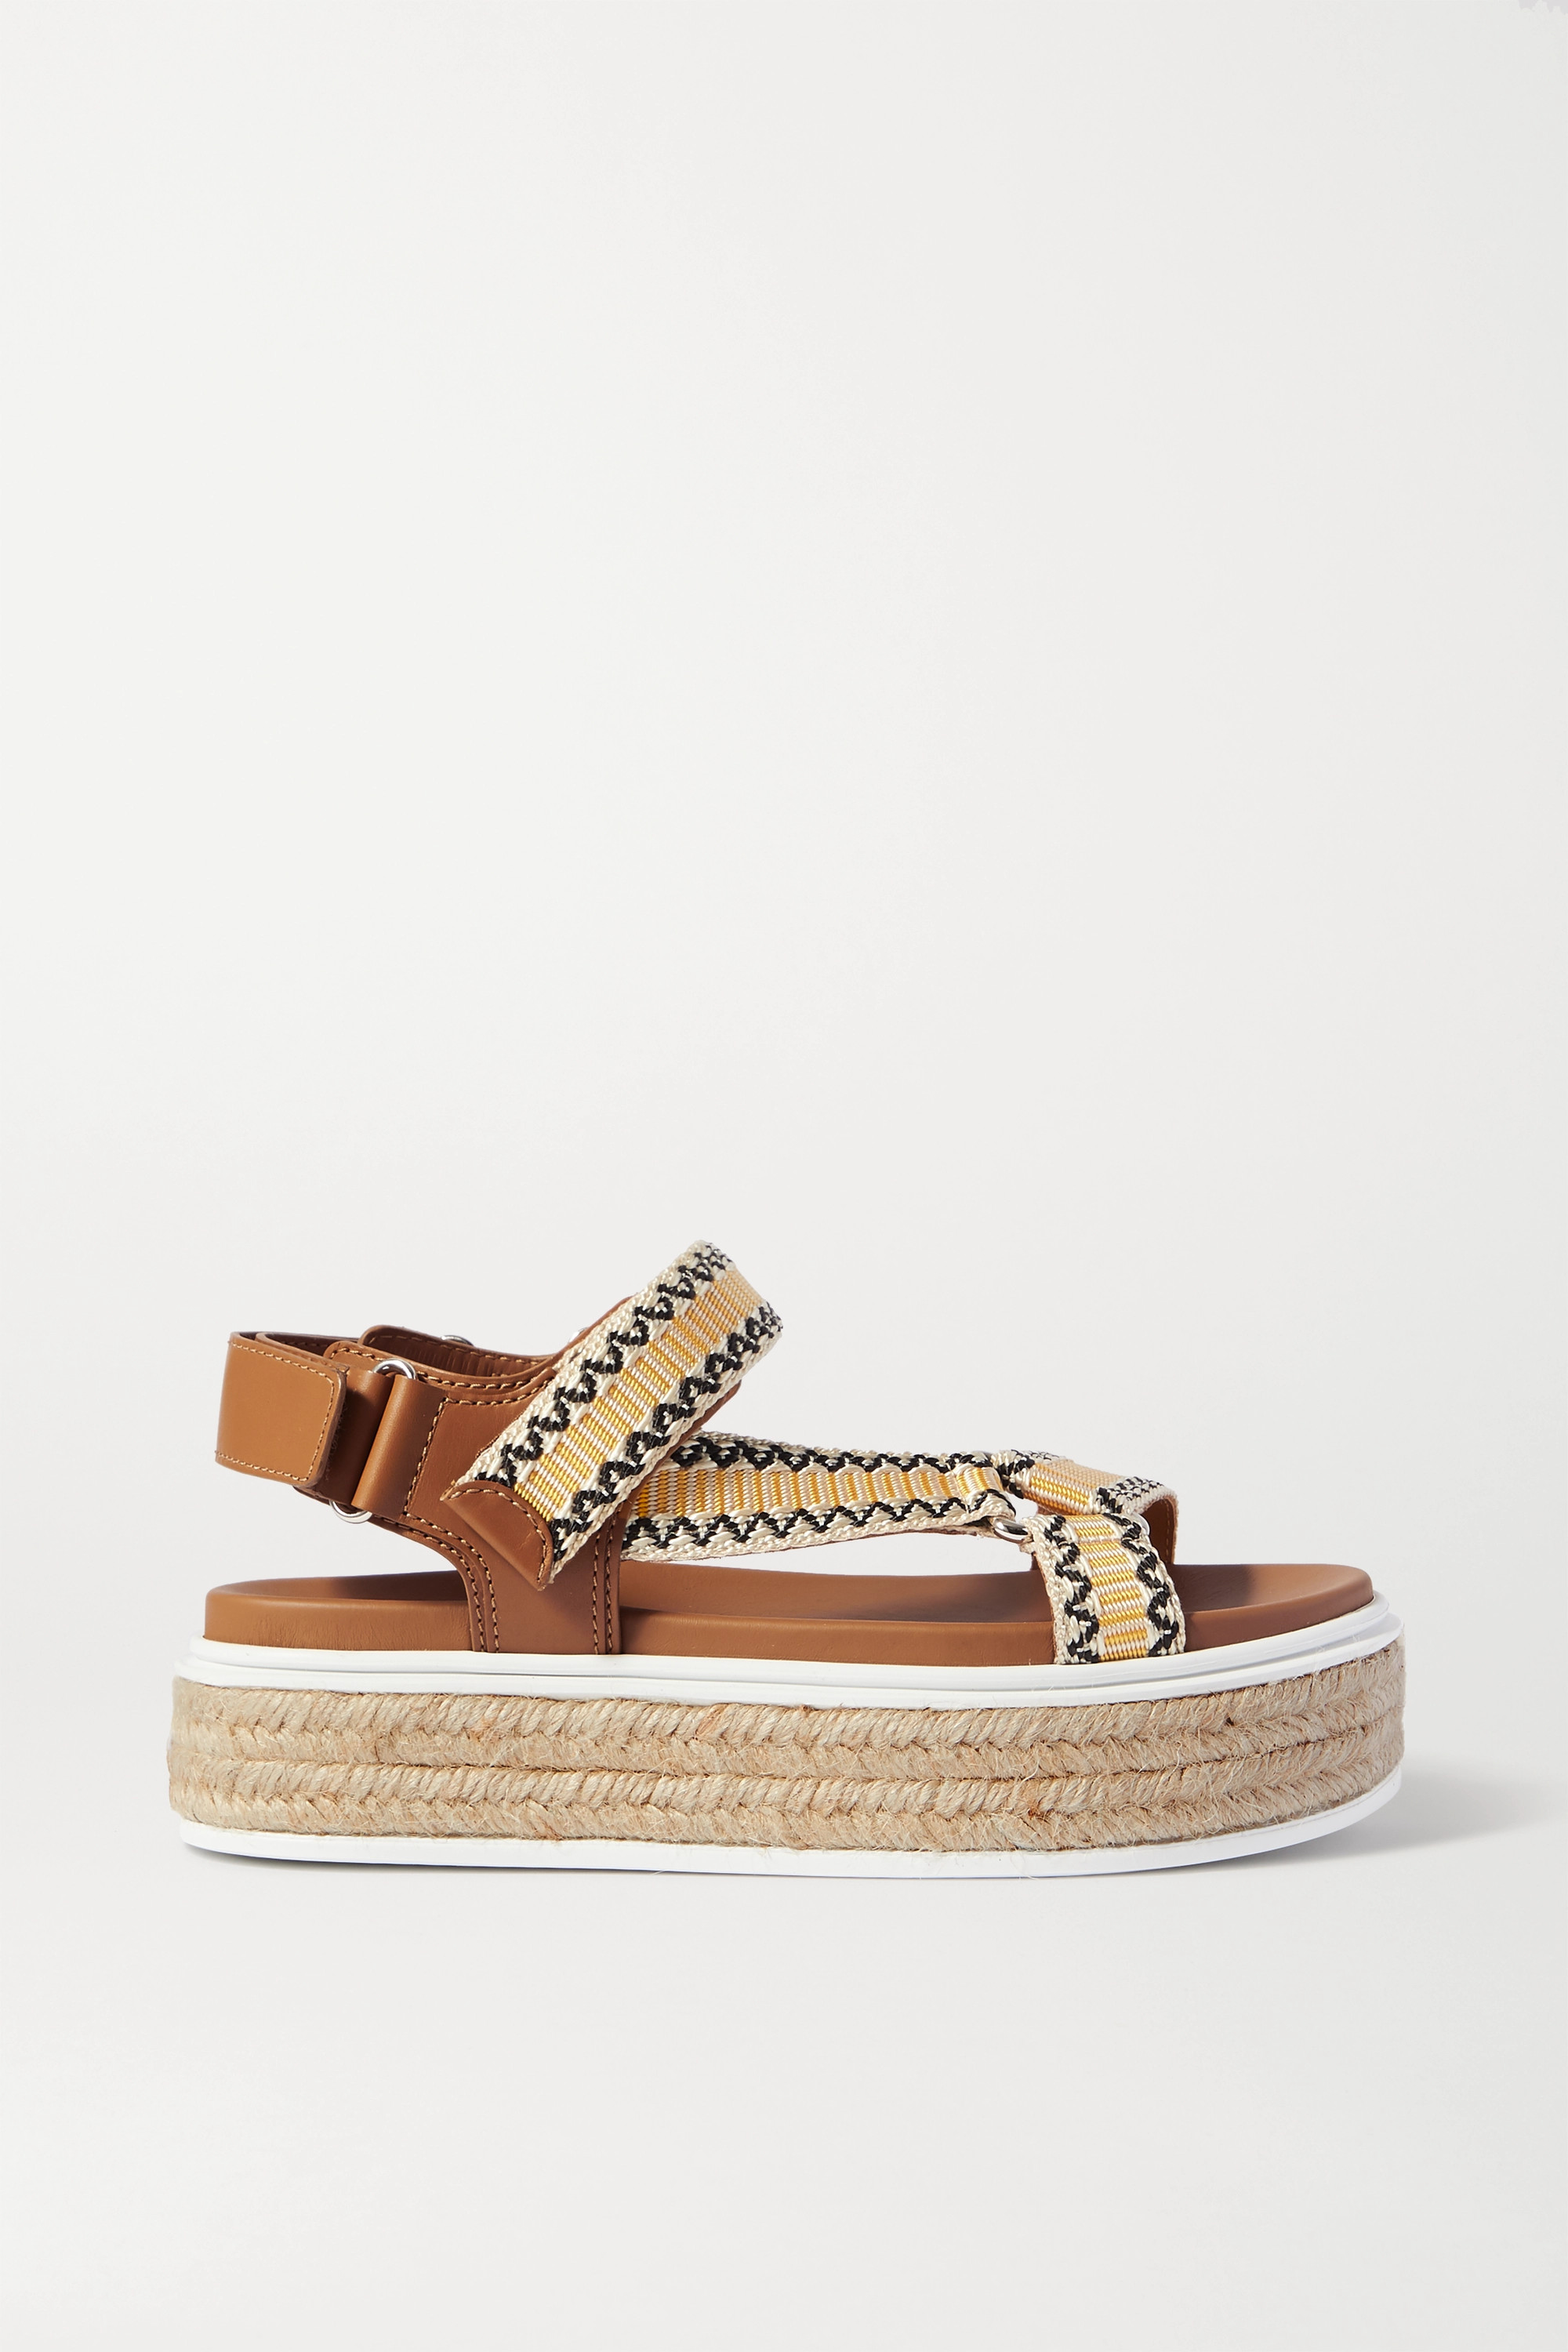 Prada Nomad embroidered canvas and leather espadrille sandals